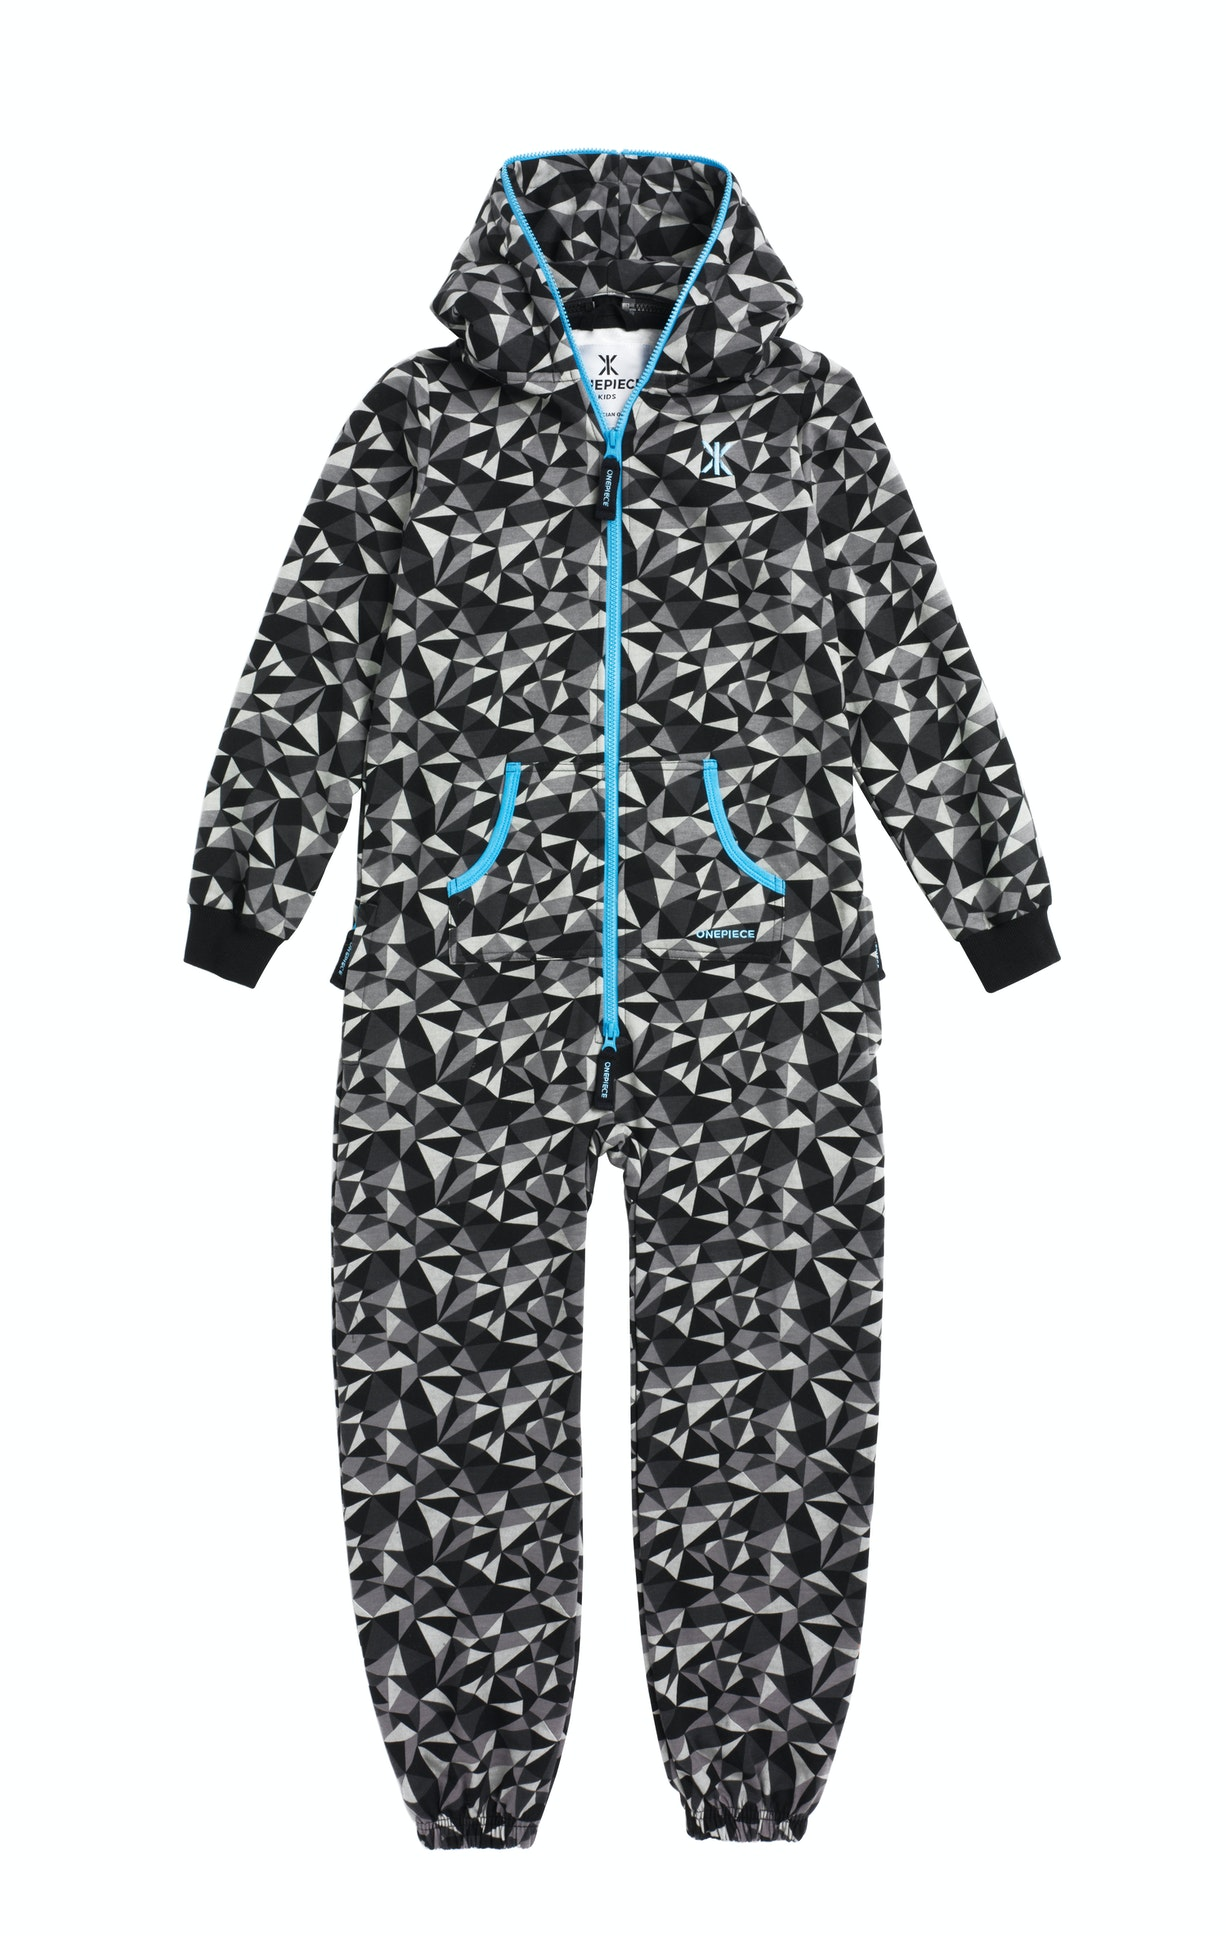 Prismatic Kids Jumpsuit Black Ever since we launched our signature Onepiece jumpsuit, we have worked on creating the most comfortable innovative and premium leisurewear. We produce all our products without compromise, using only the highest quality cotton and methods.